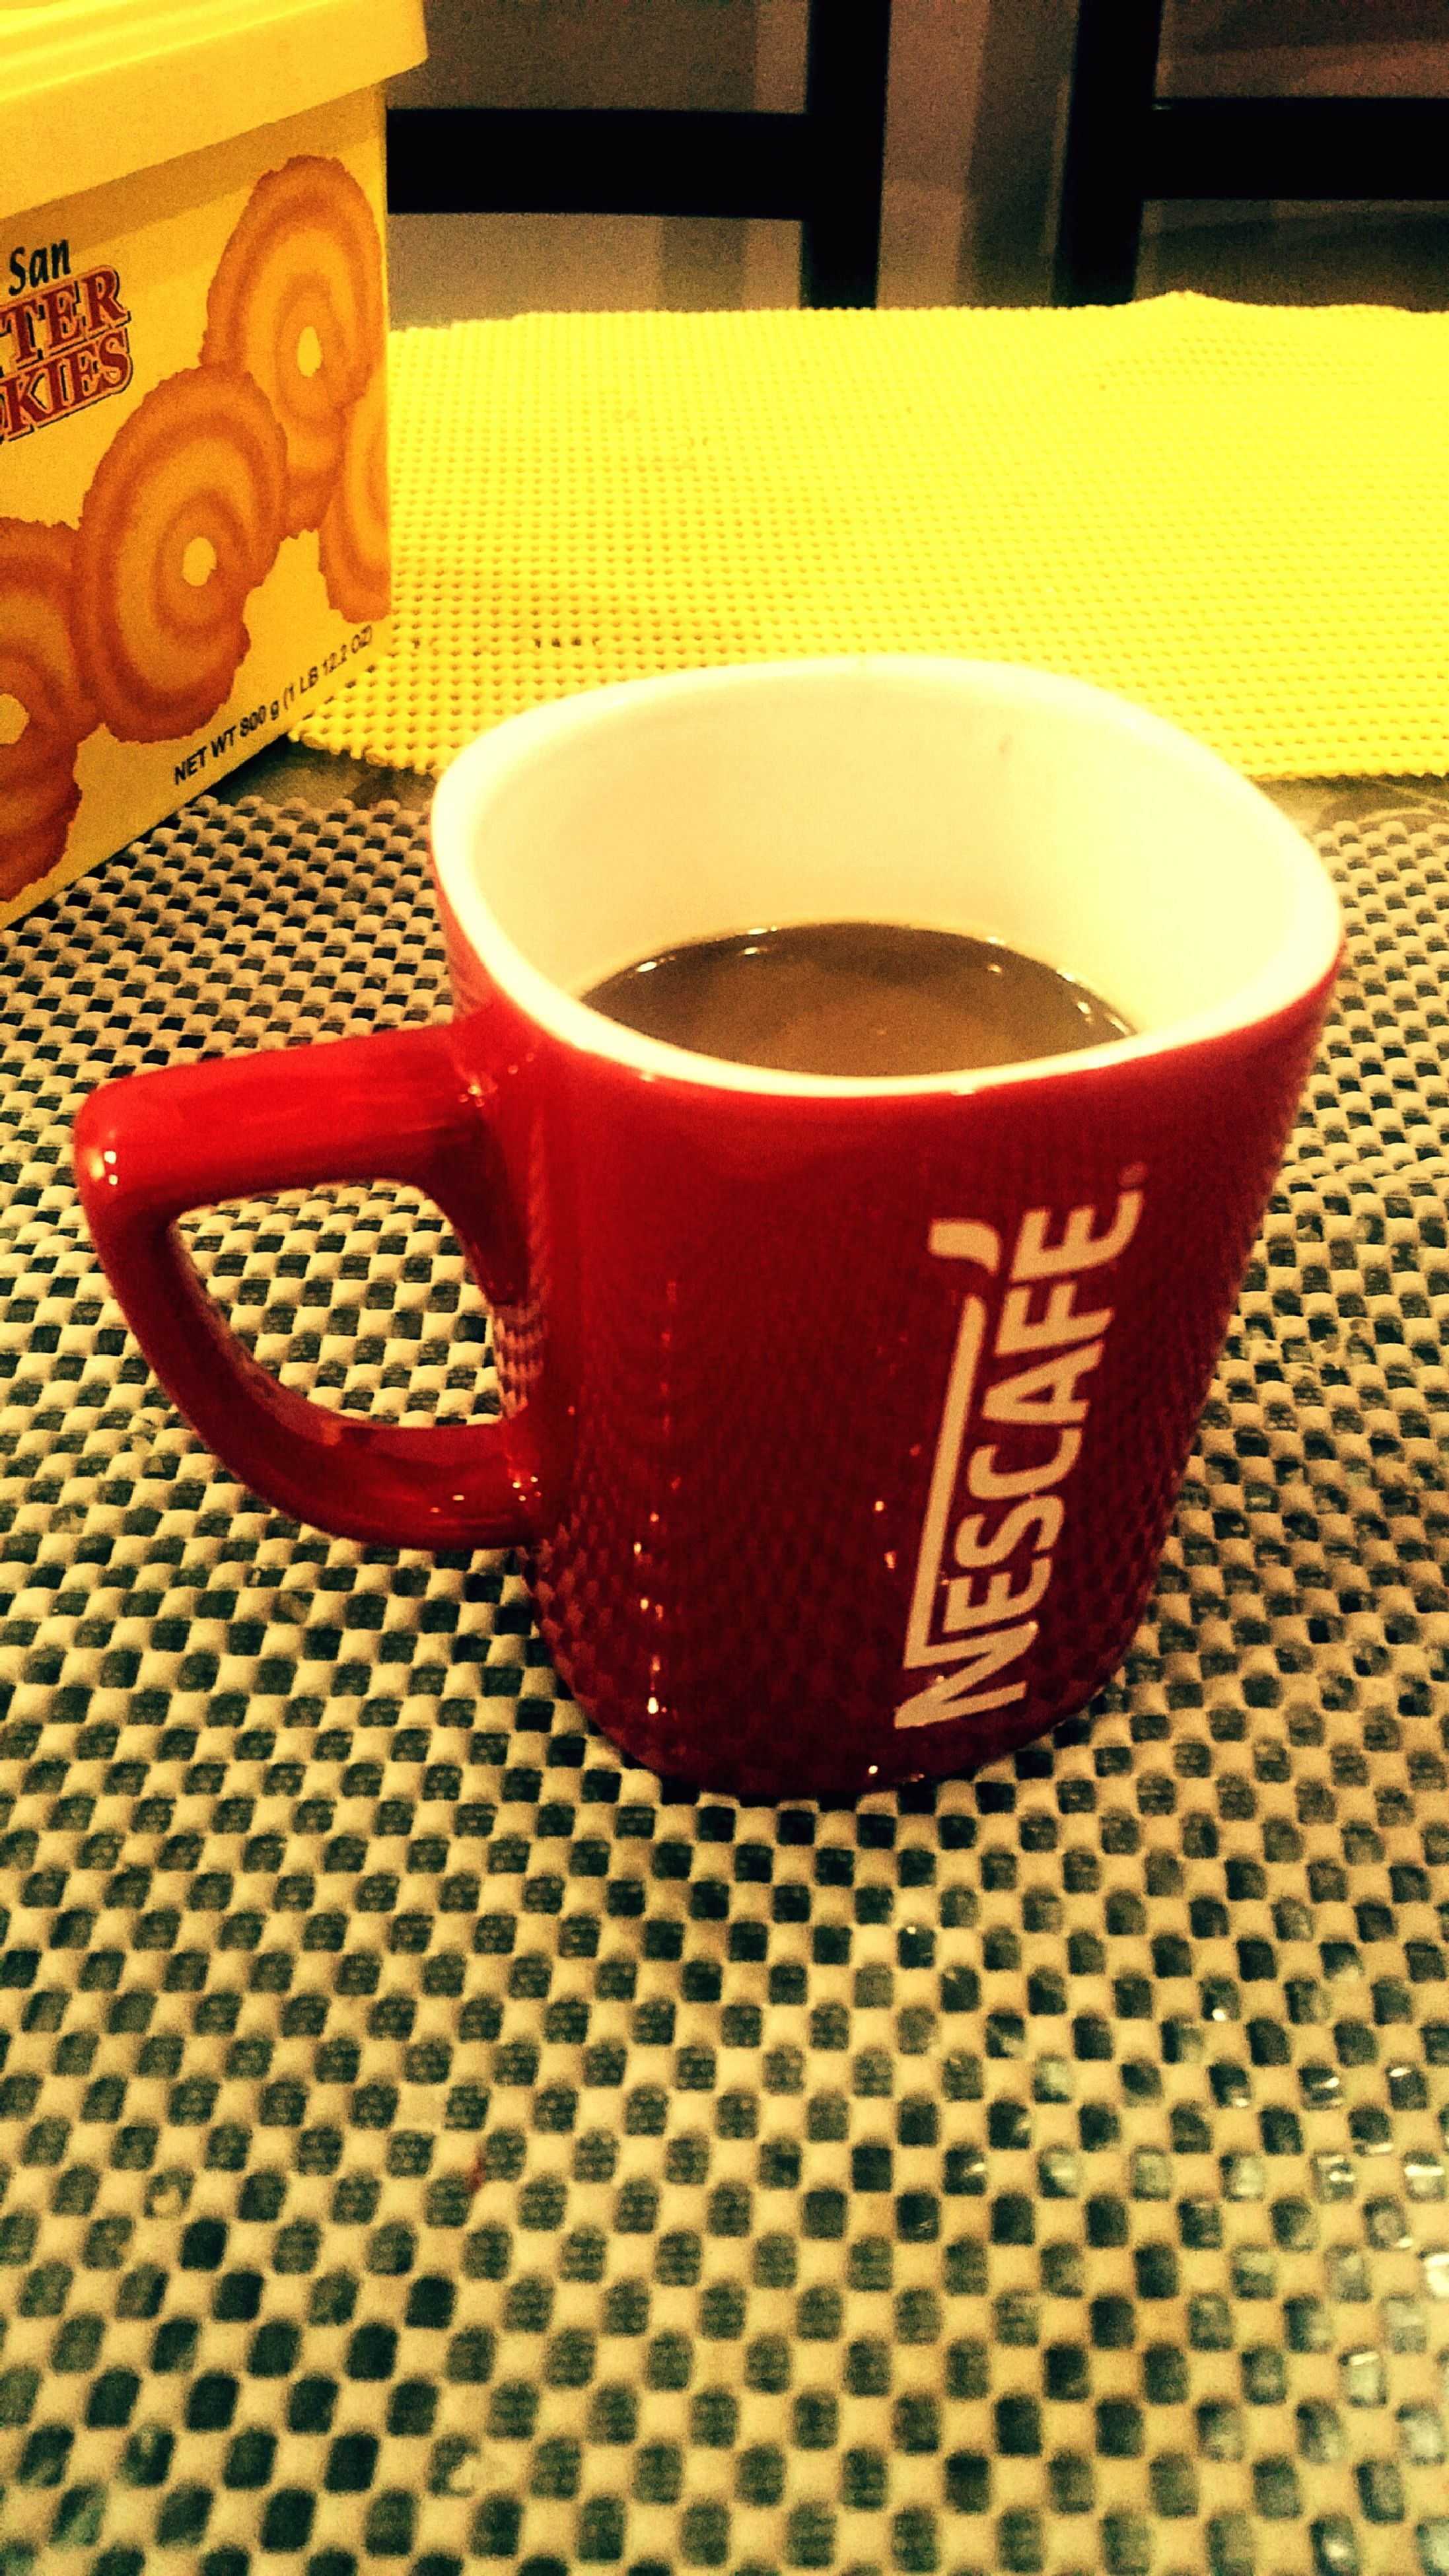 drink, refreshment, food and drink, coffee cup, close-up, red, drinking glass, table, cup, no people, serving size, frothy drink, indoors, tea - hot drink, freshness, mug, beer, day